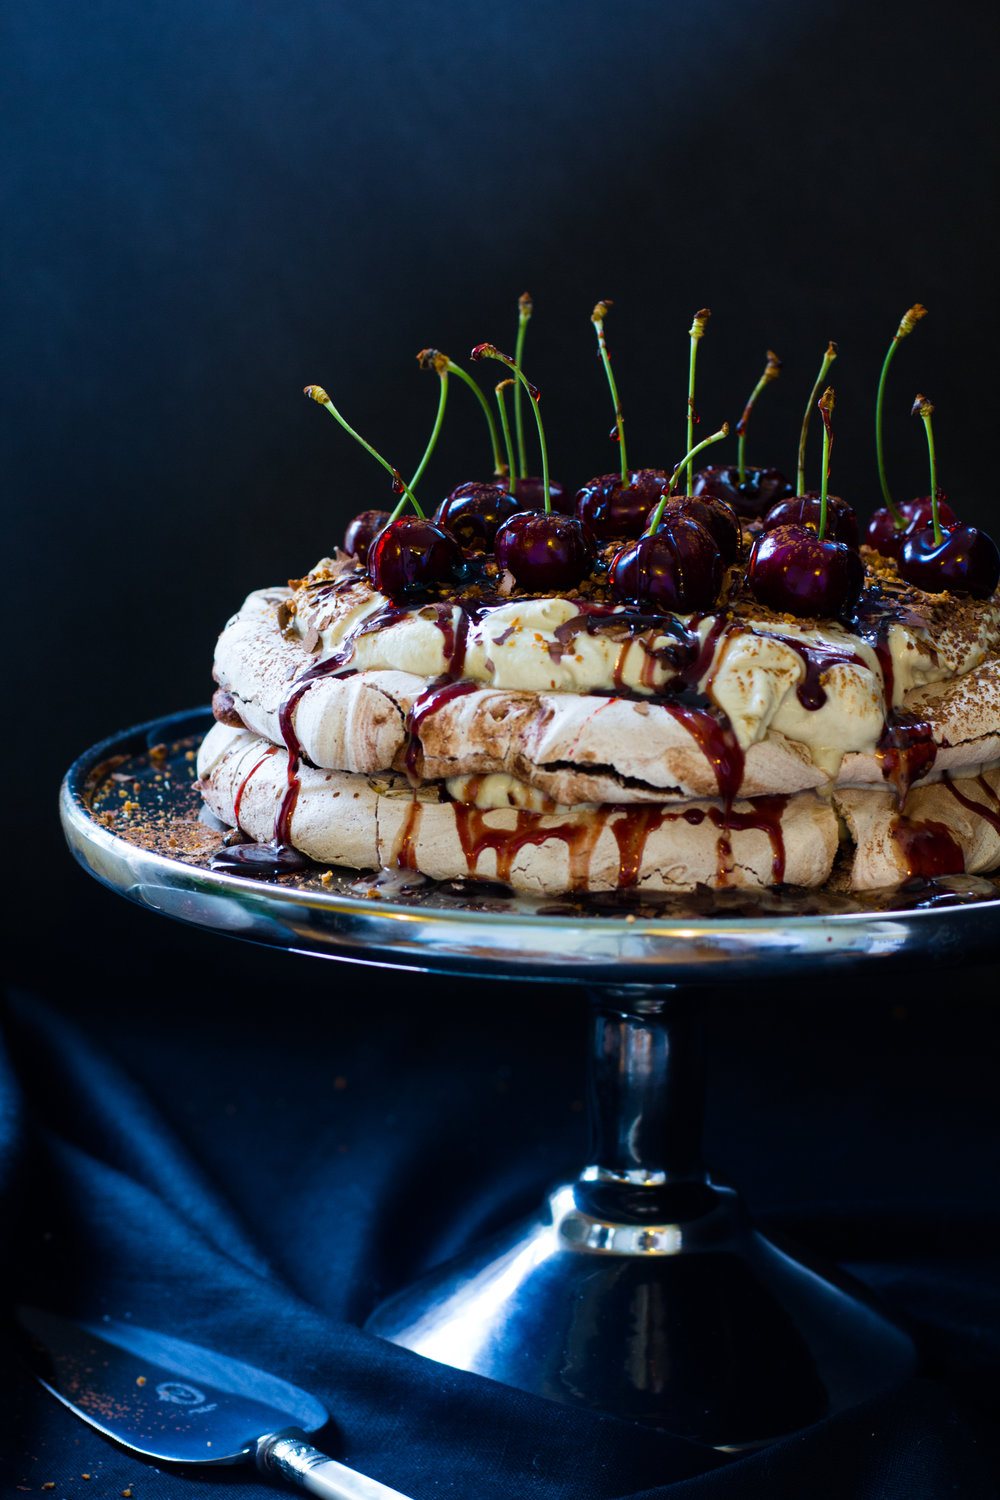 Black forest cherry pavalova - Dark chocolate, coffee, cherries, and a sticky caramel syrup stud this show stopping dessert